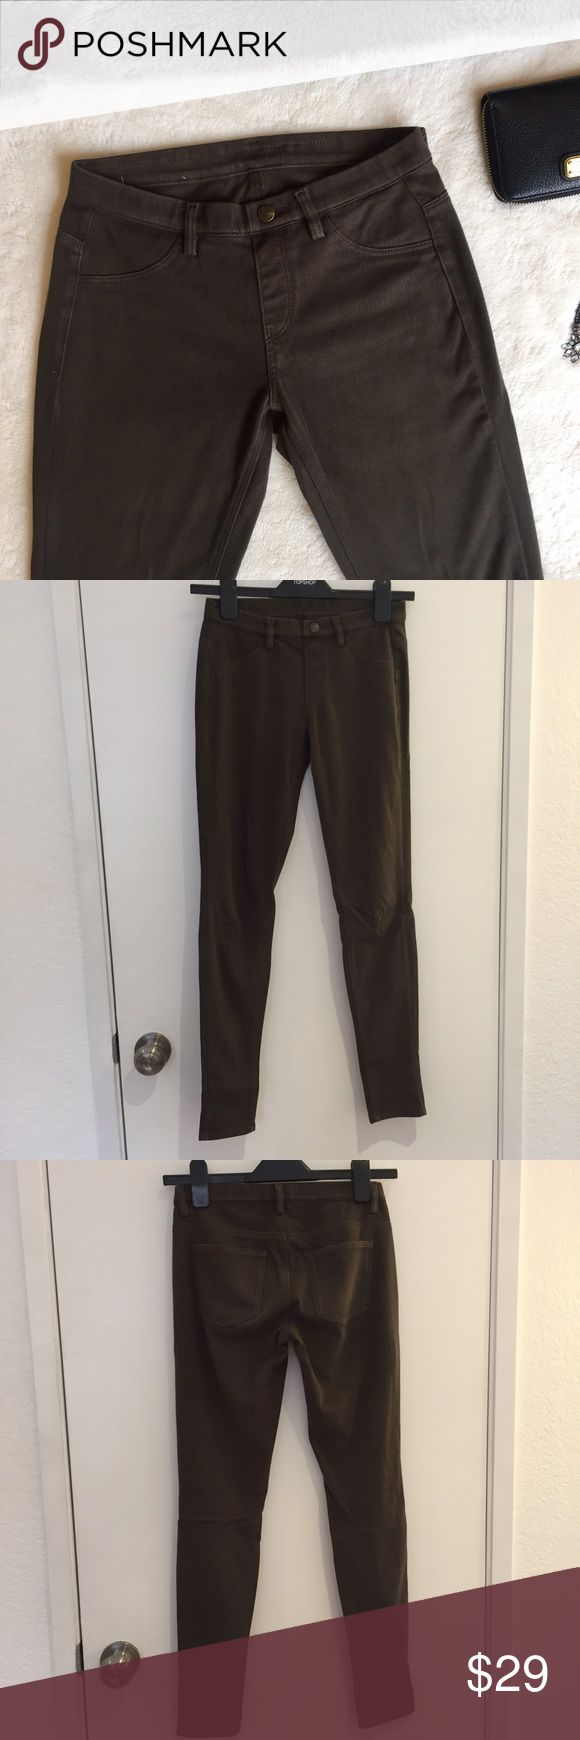 """Uniqlo Legging Pants Stretchy leggings that look like pants. In good condition. Olive green color. The inseam is 28.5"""" and the waist is 12.5"""" but it stretches a bit. Faux button and faux pockets on the front. Actual pockets on the back. Super comfy. Uniqlo Pants Leggings"""